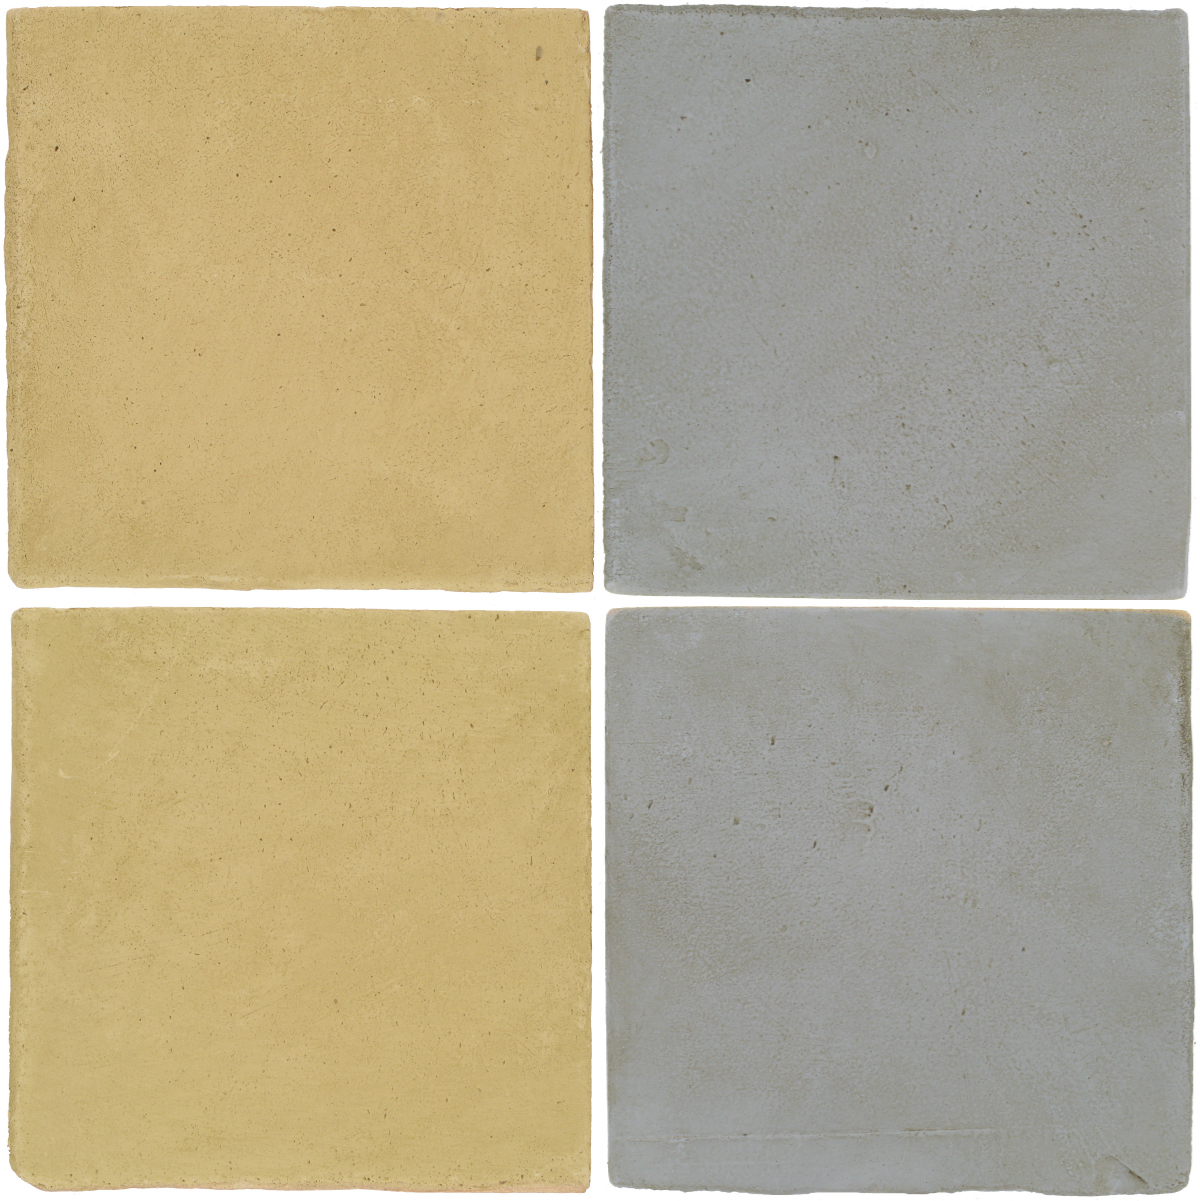 Pedralbes Antique Terracotta  2 Color Combinations  OHS-PGGW Golden W. + OHS-PGOG Oyster Grey